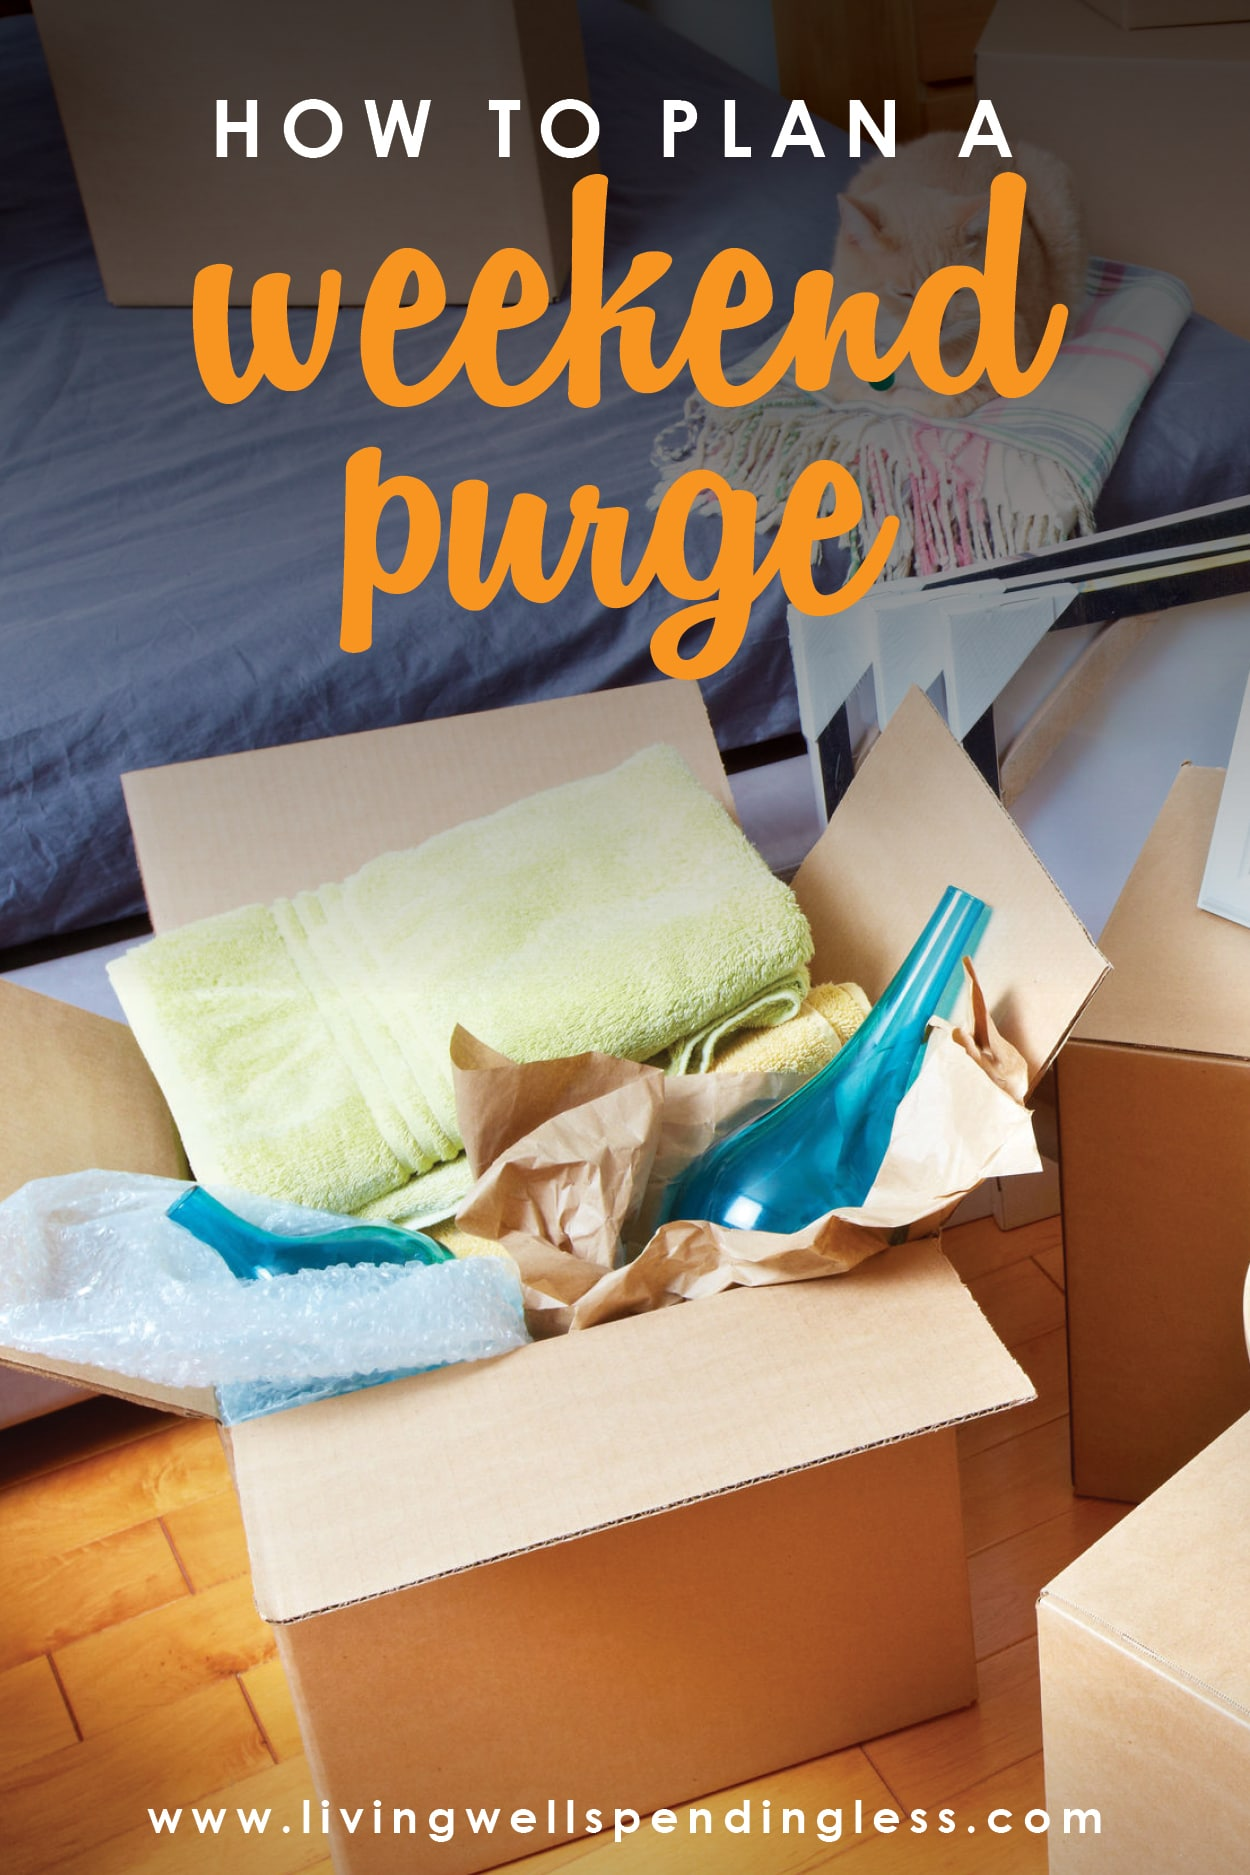 Want to kick-off your New Year with a Clean slate? Why not dedicate a weekend to clearing the clutter and getting unstuffed for good? Here's how to plan a weekend purge from start to finish!